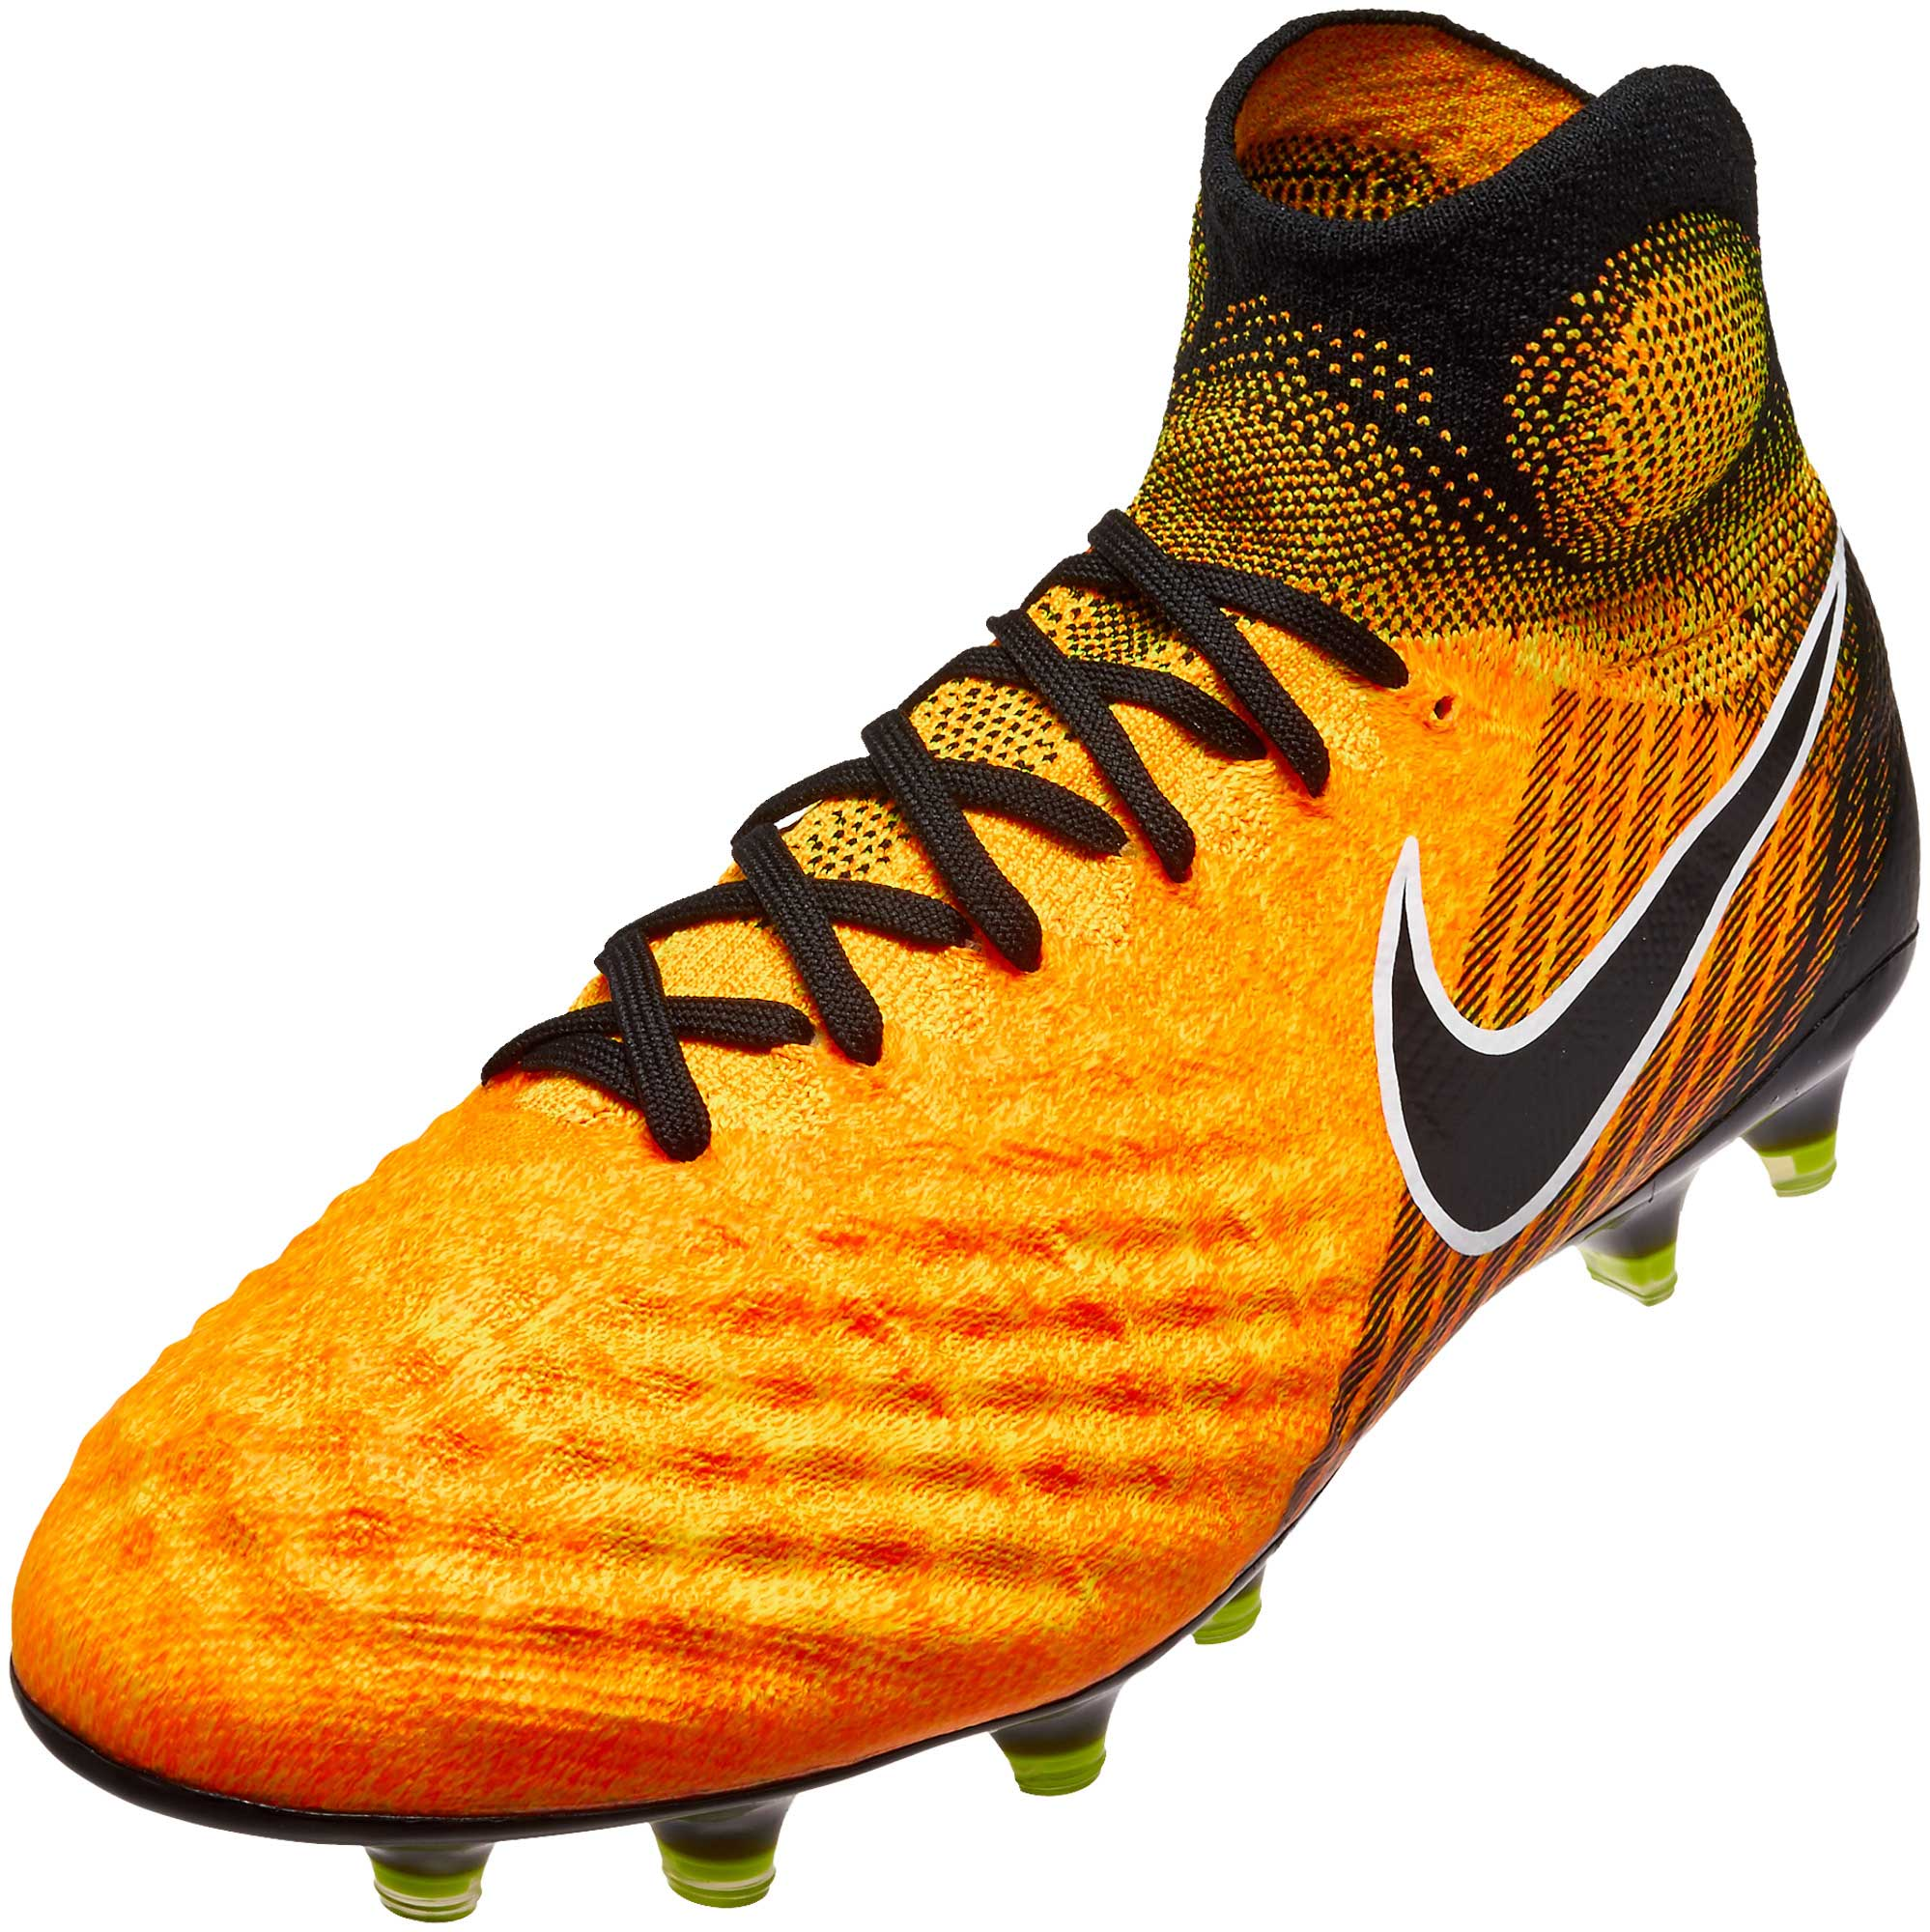 9e14617b1222 Nike Magista Obra II Soccer Cleats - Orange Obra Cleats